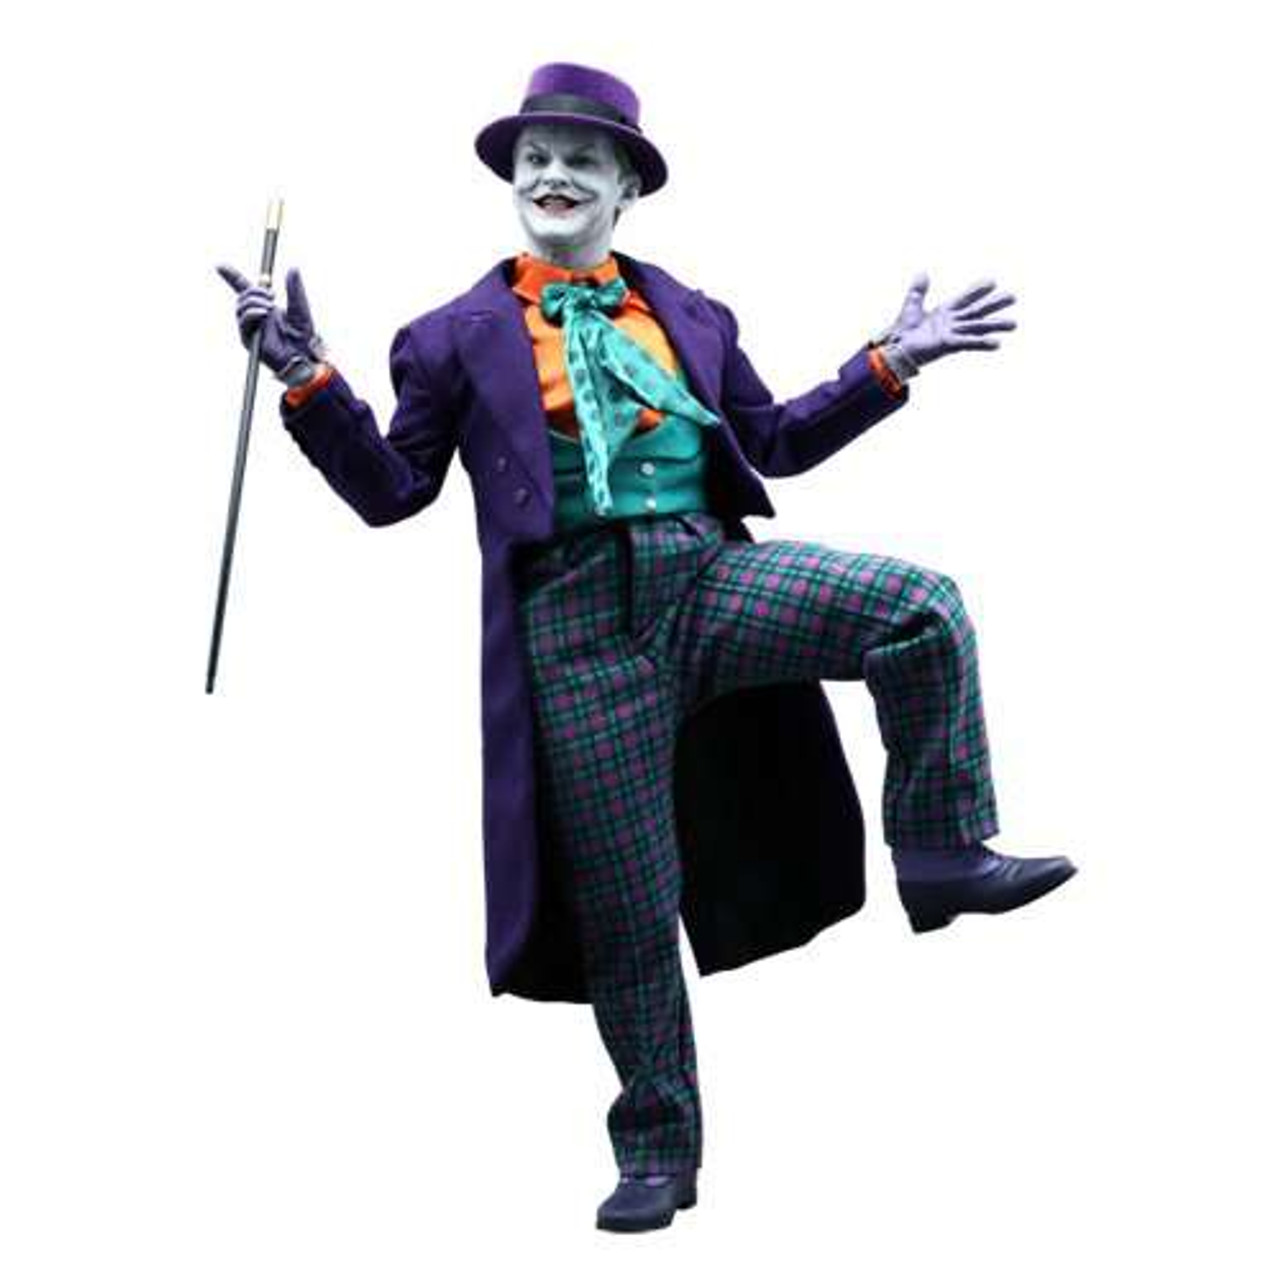 Batman 1989 Movie Movie Masterpiece Deluxe The Joker 1/6 Collectible Figure DX-08 [Jack Nicholson]